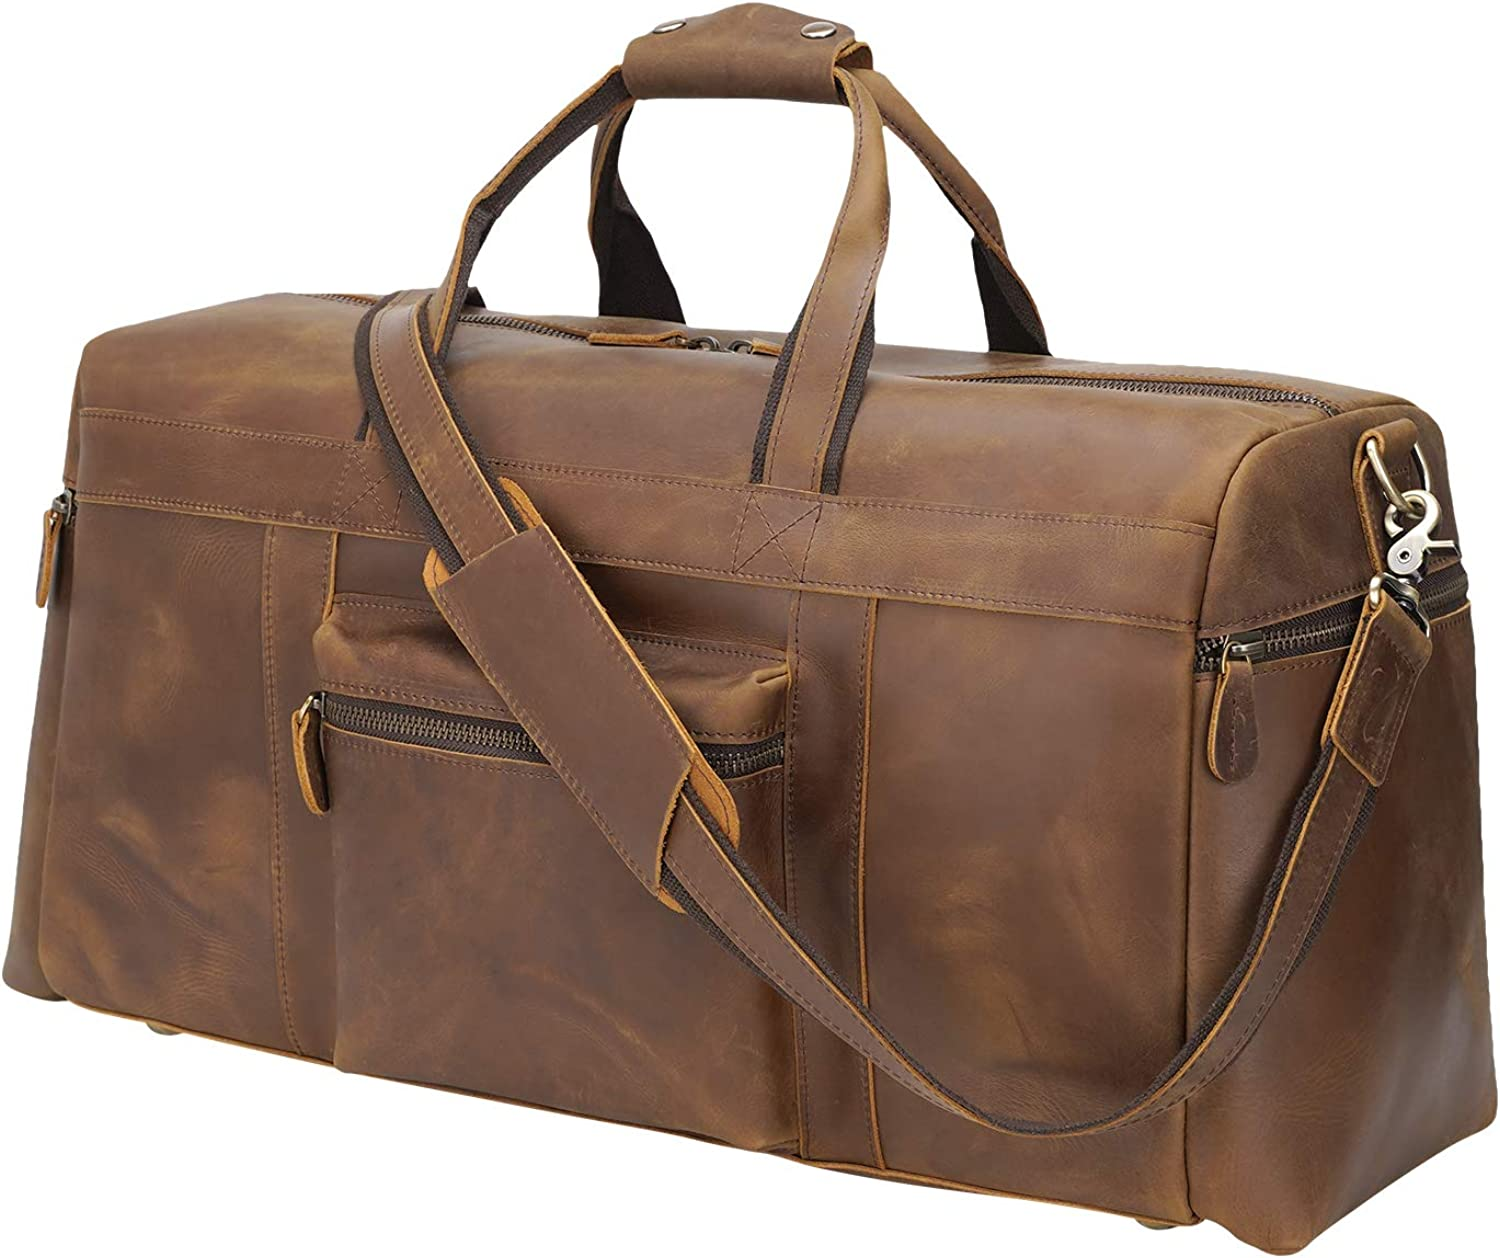 Texbo Men's Thick Full Grain Cowhide Leather Vintage Big Travel Duffle Luggage Bag 23